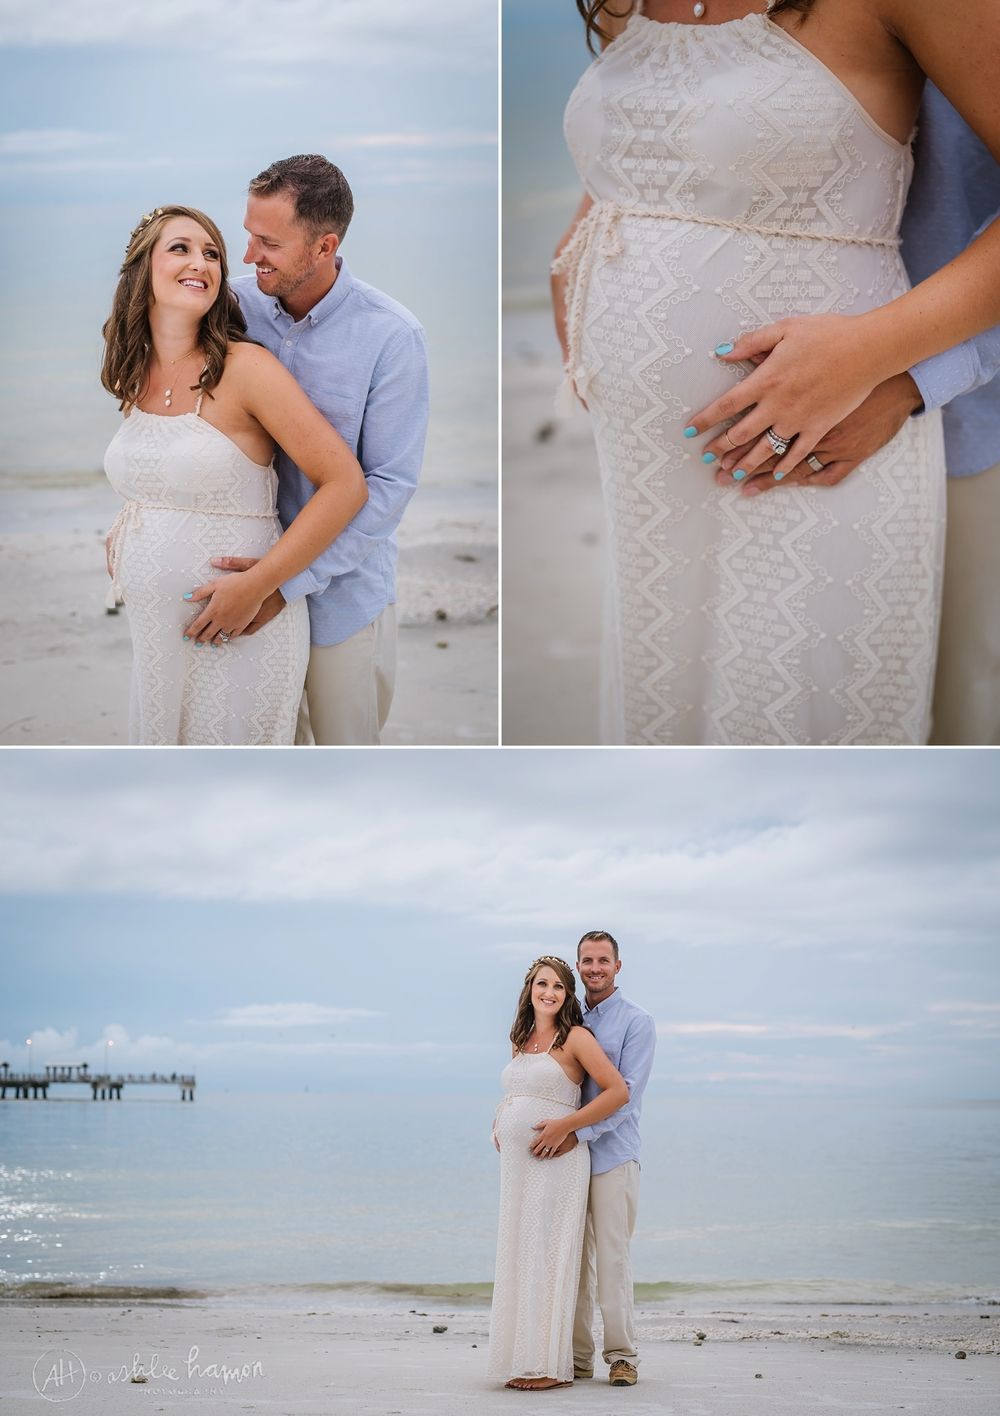 tampa-maternity-photography-ashlee-hamon-beach_0000.jpg